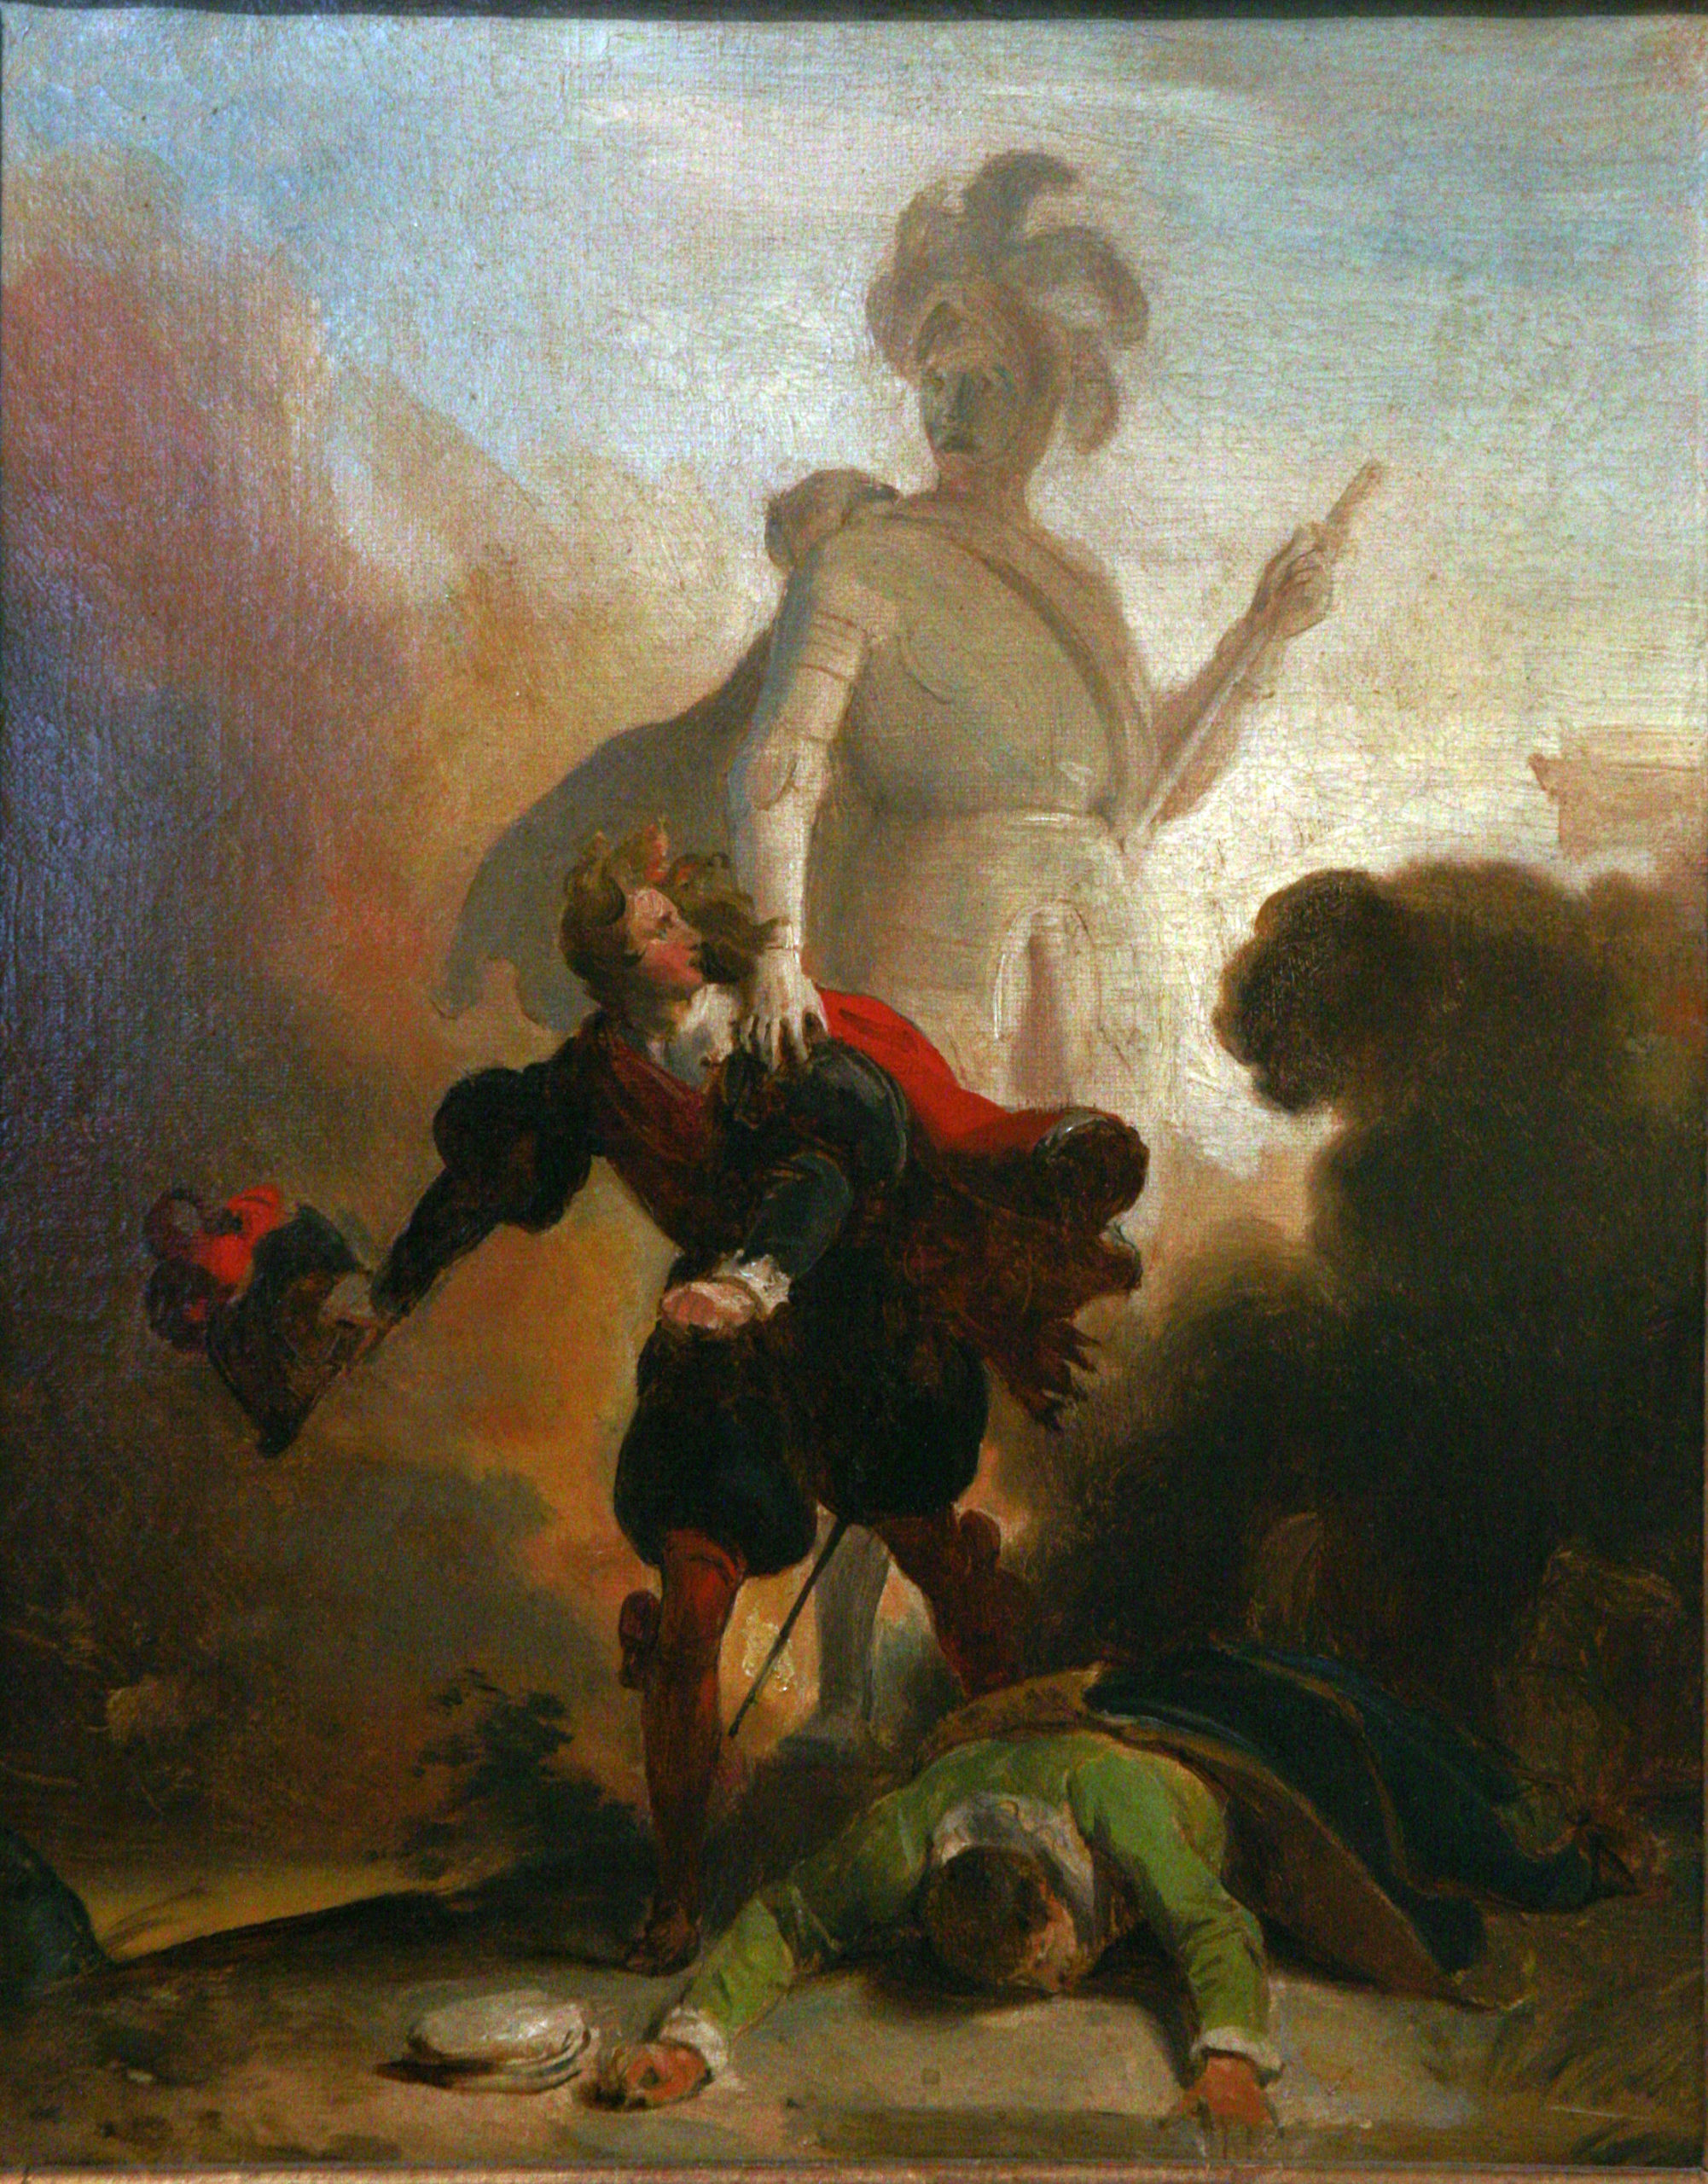 Le tableau de Fragonard illustrant le mythe de Don Juan.